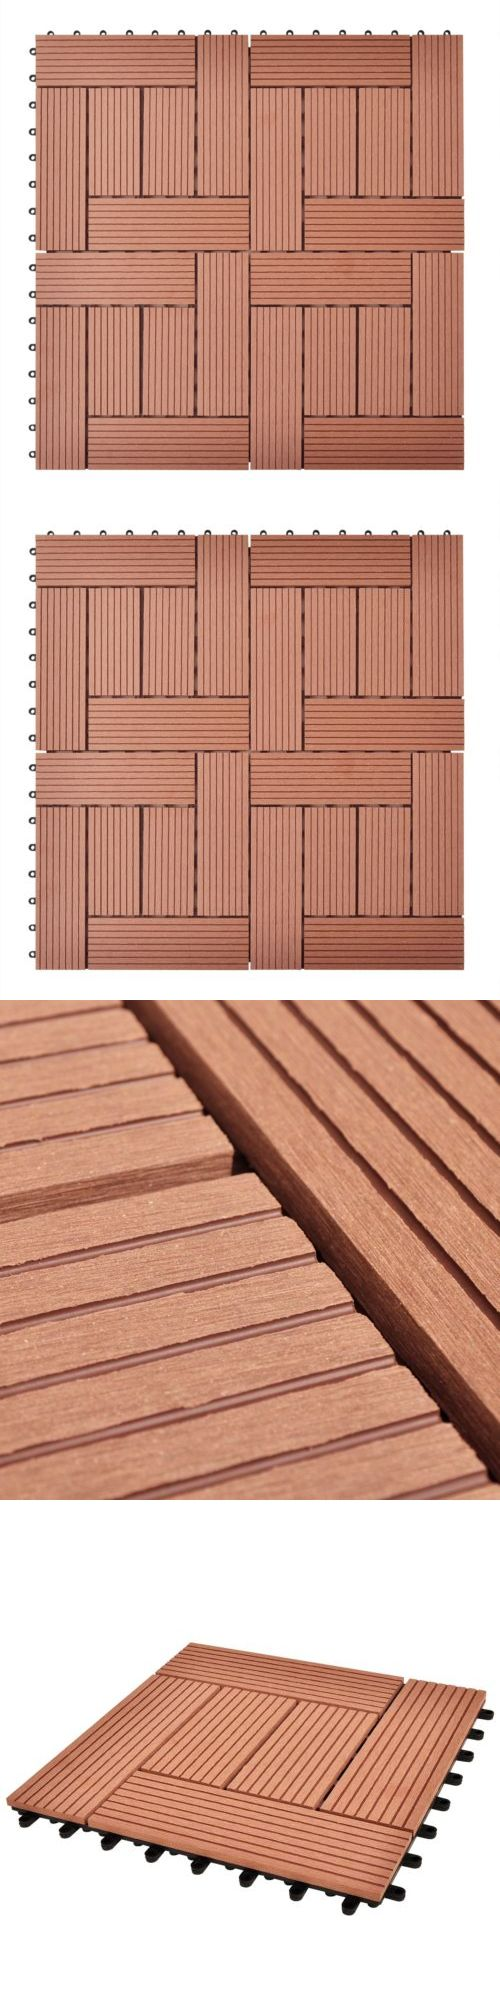 Deck Boards and Tiles 118860: Vidaxl 11 Pcs Wpc Decking Tiles Wood Plastic Composite Boards 11.8 X11.8 Brown -> BUY IT NOW ONLY: $41.99 on eBay!